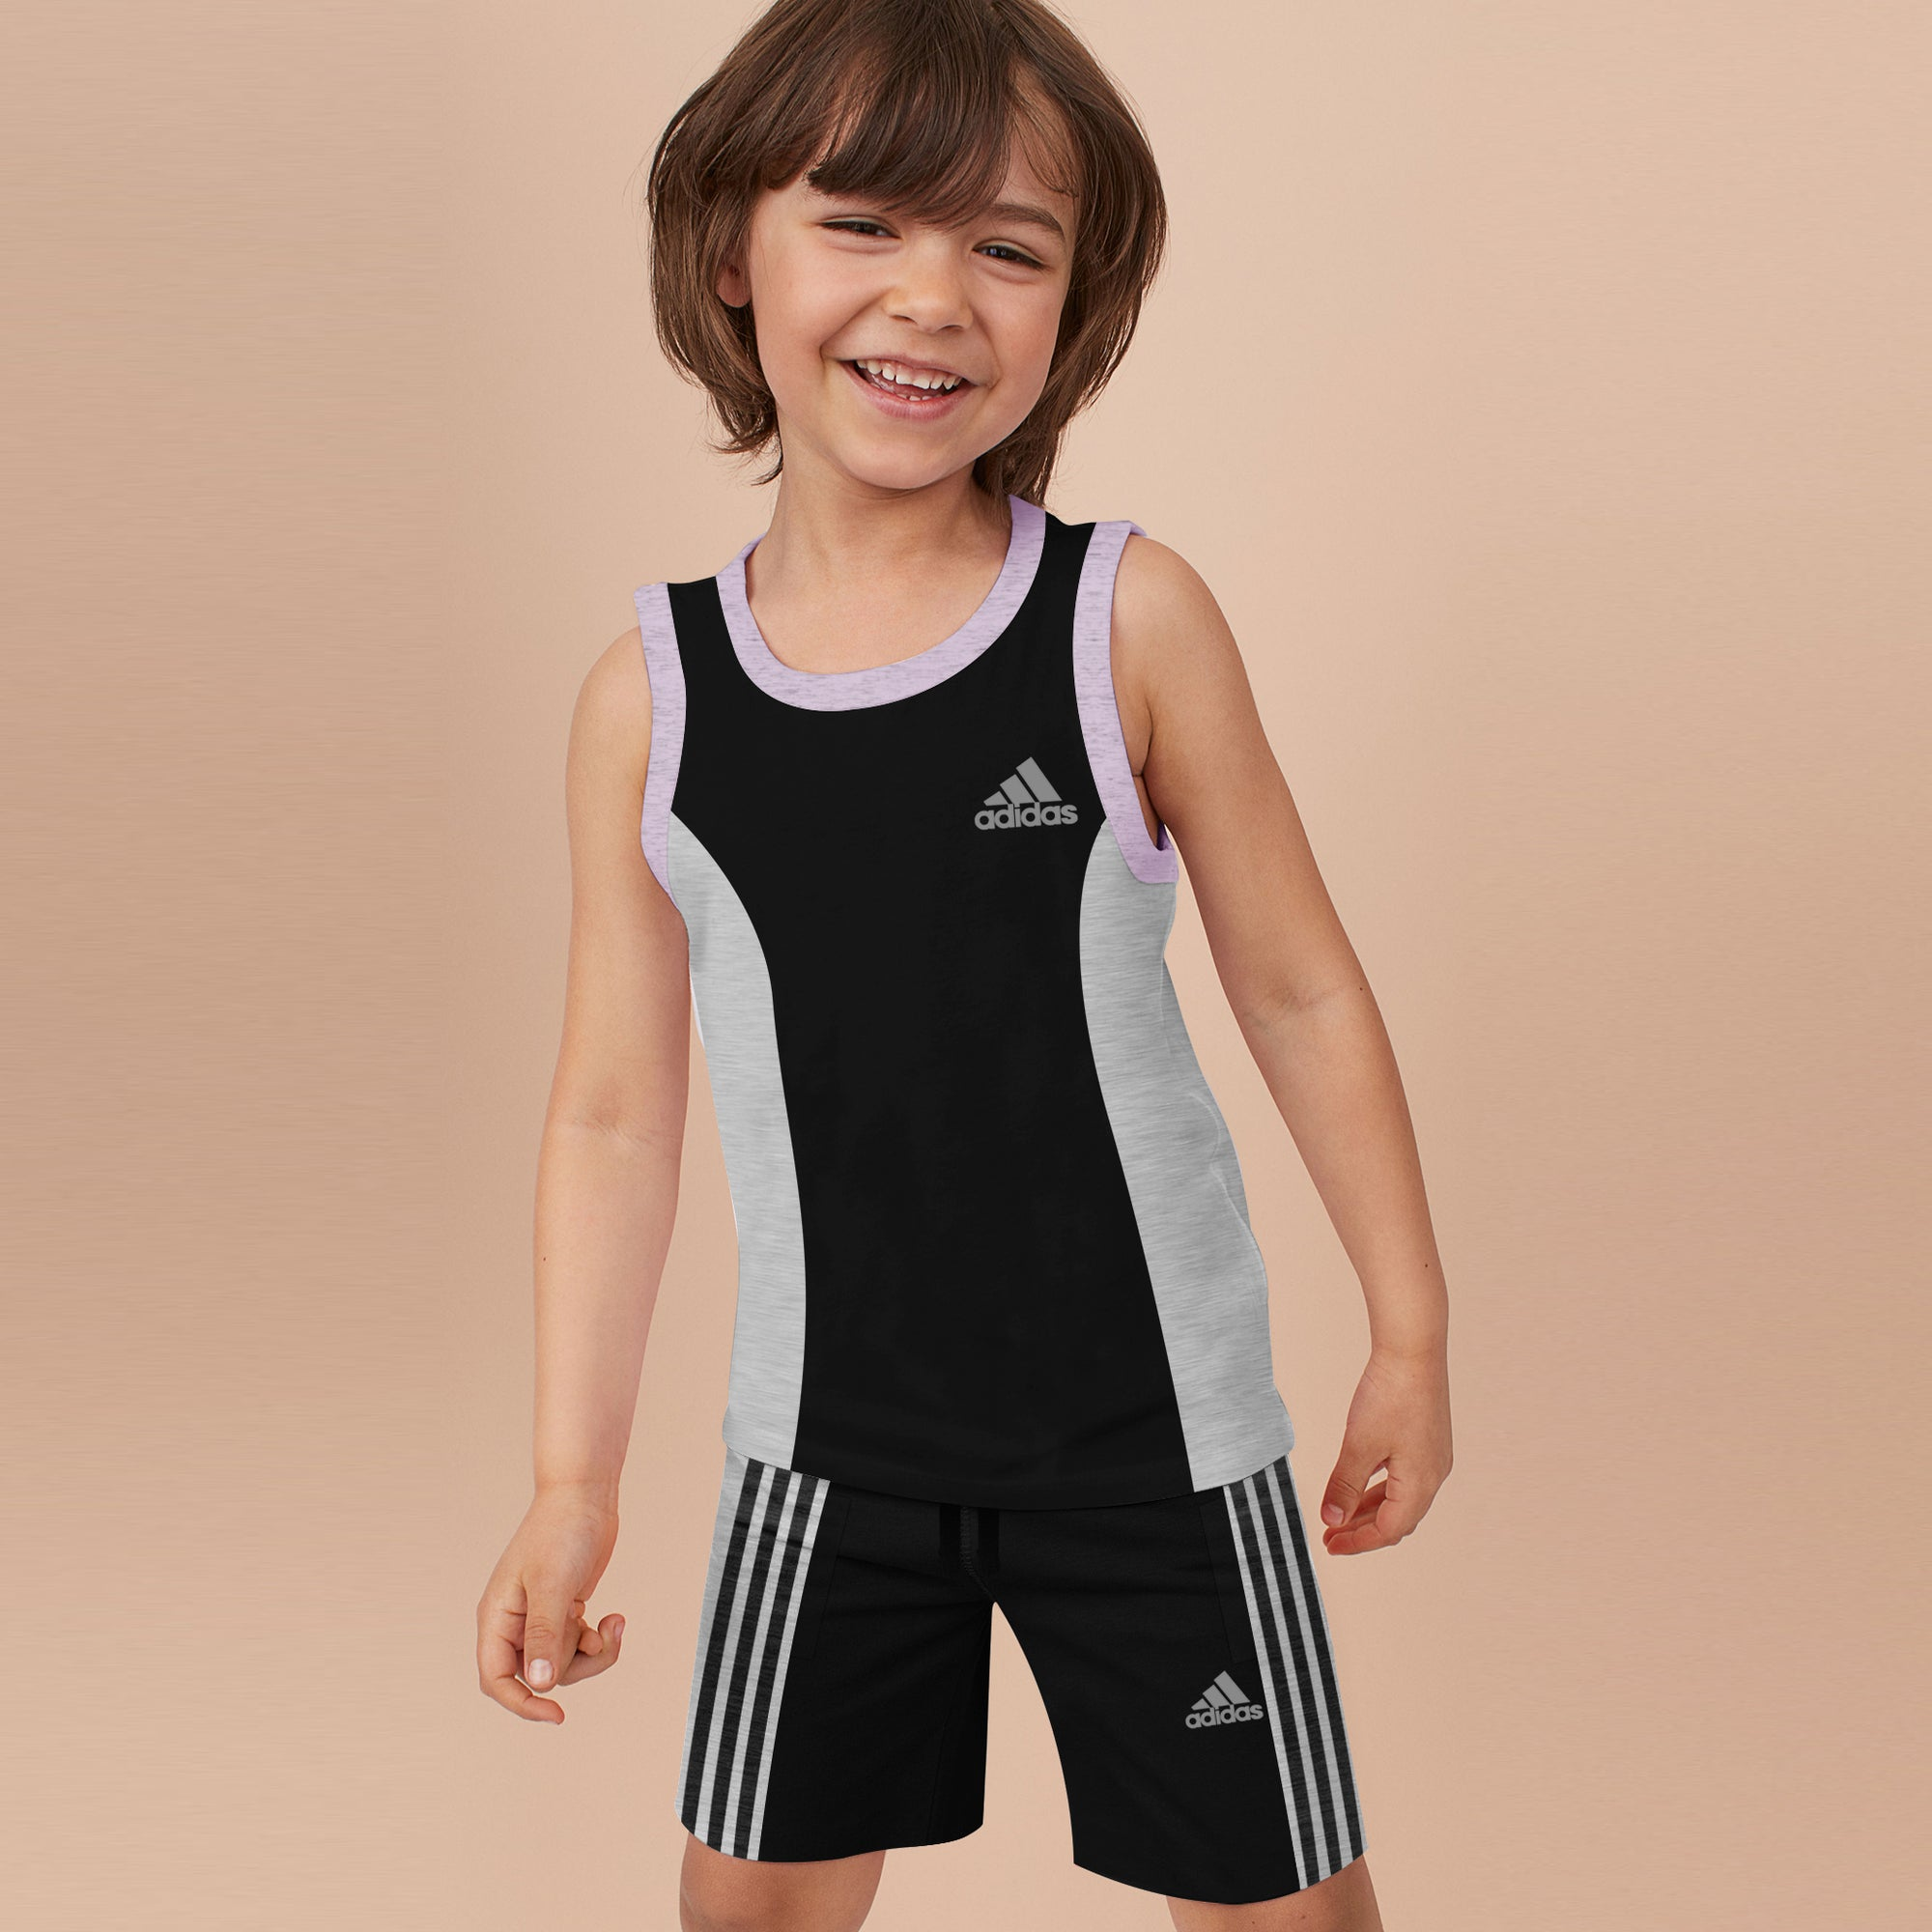 Adidas Single Jersey Sport Suit For Kids-Black with Grey Melange-BE8995